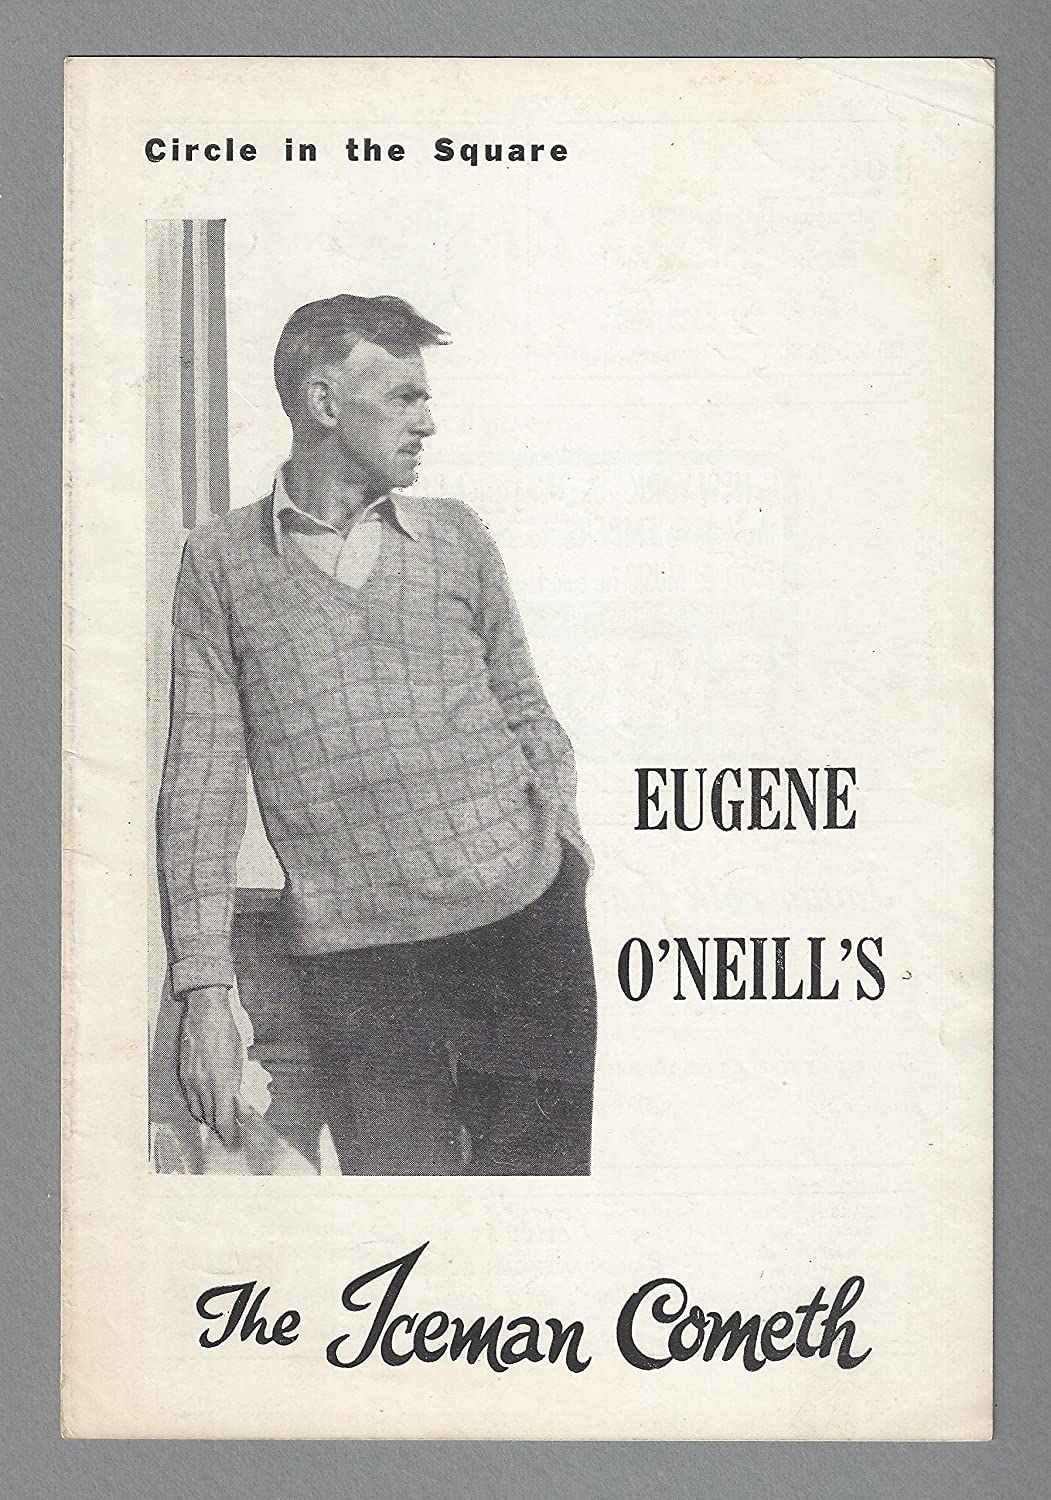 Eugene O'Neill'THE ICEMAN COMETH' George Segal/Henderson Forsythe/Jose Quintero 1957 Off-Broadway Playbill